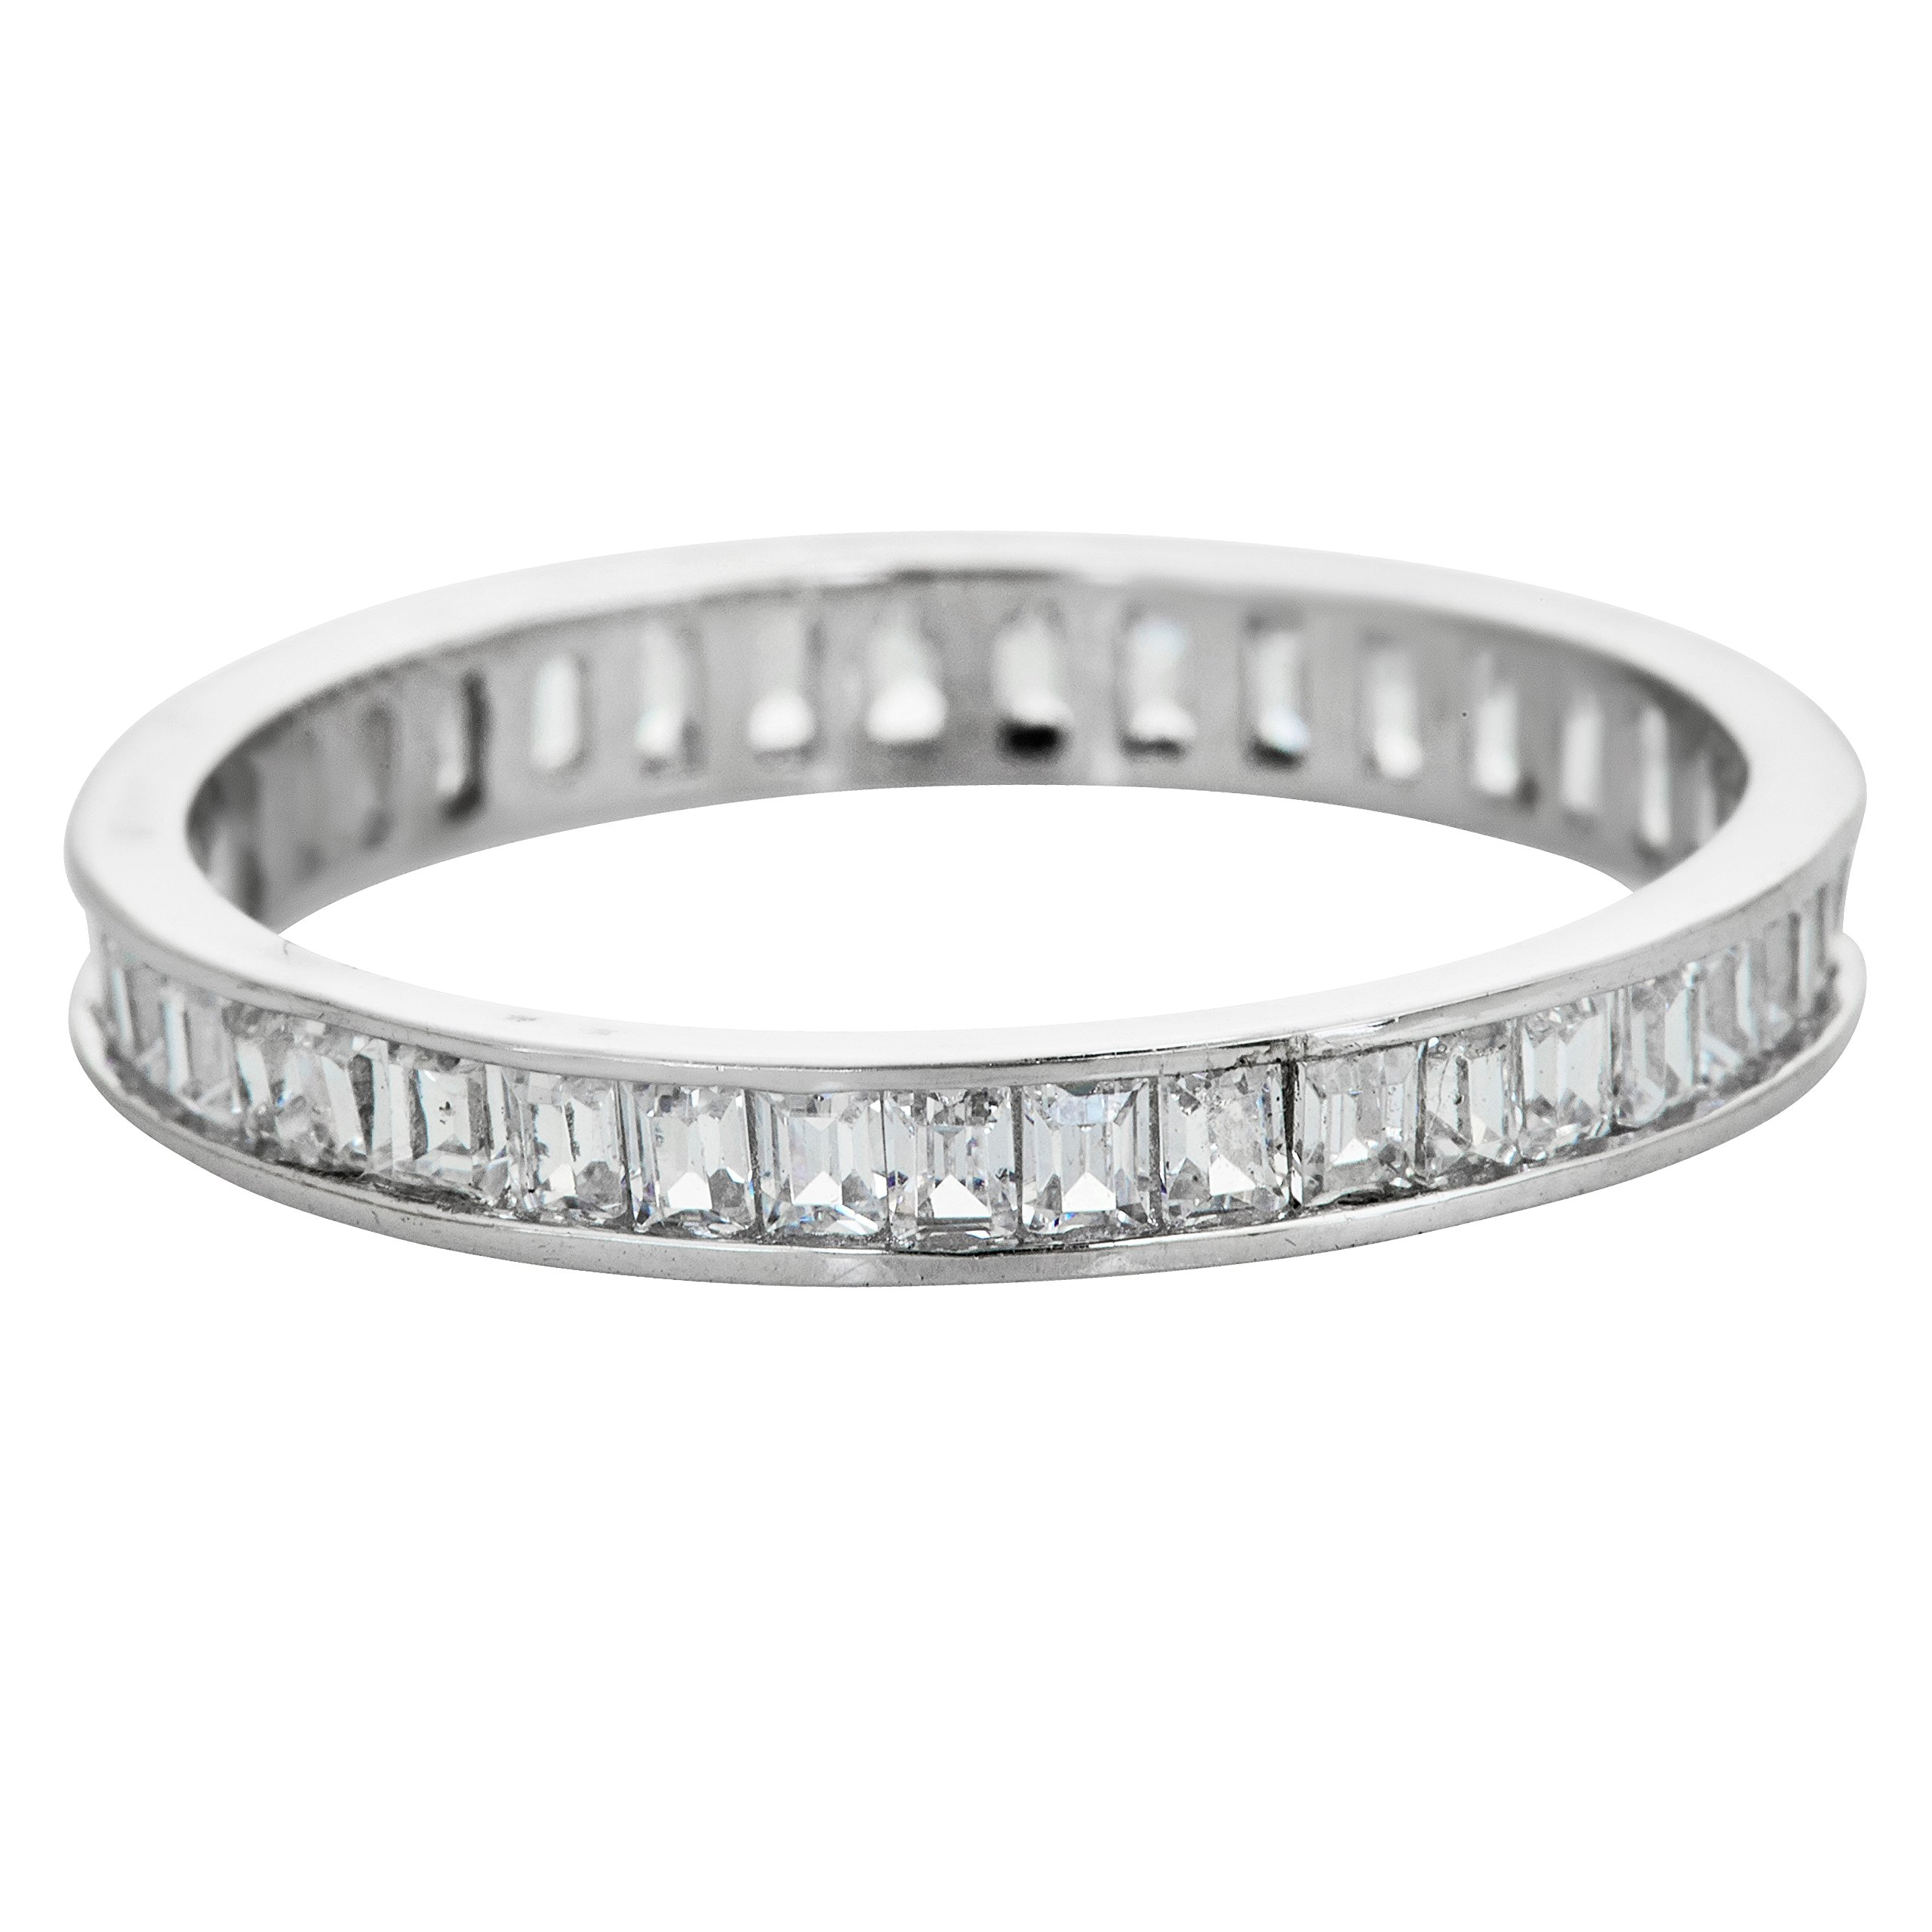 Decadence Sterling Silver 1.5x2mm Channel Set Baguette Cubic Zirconia Eternity Band Stackable Ring